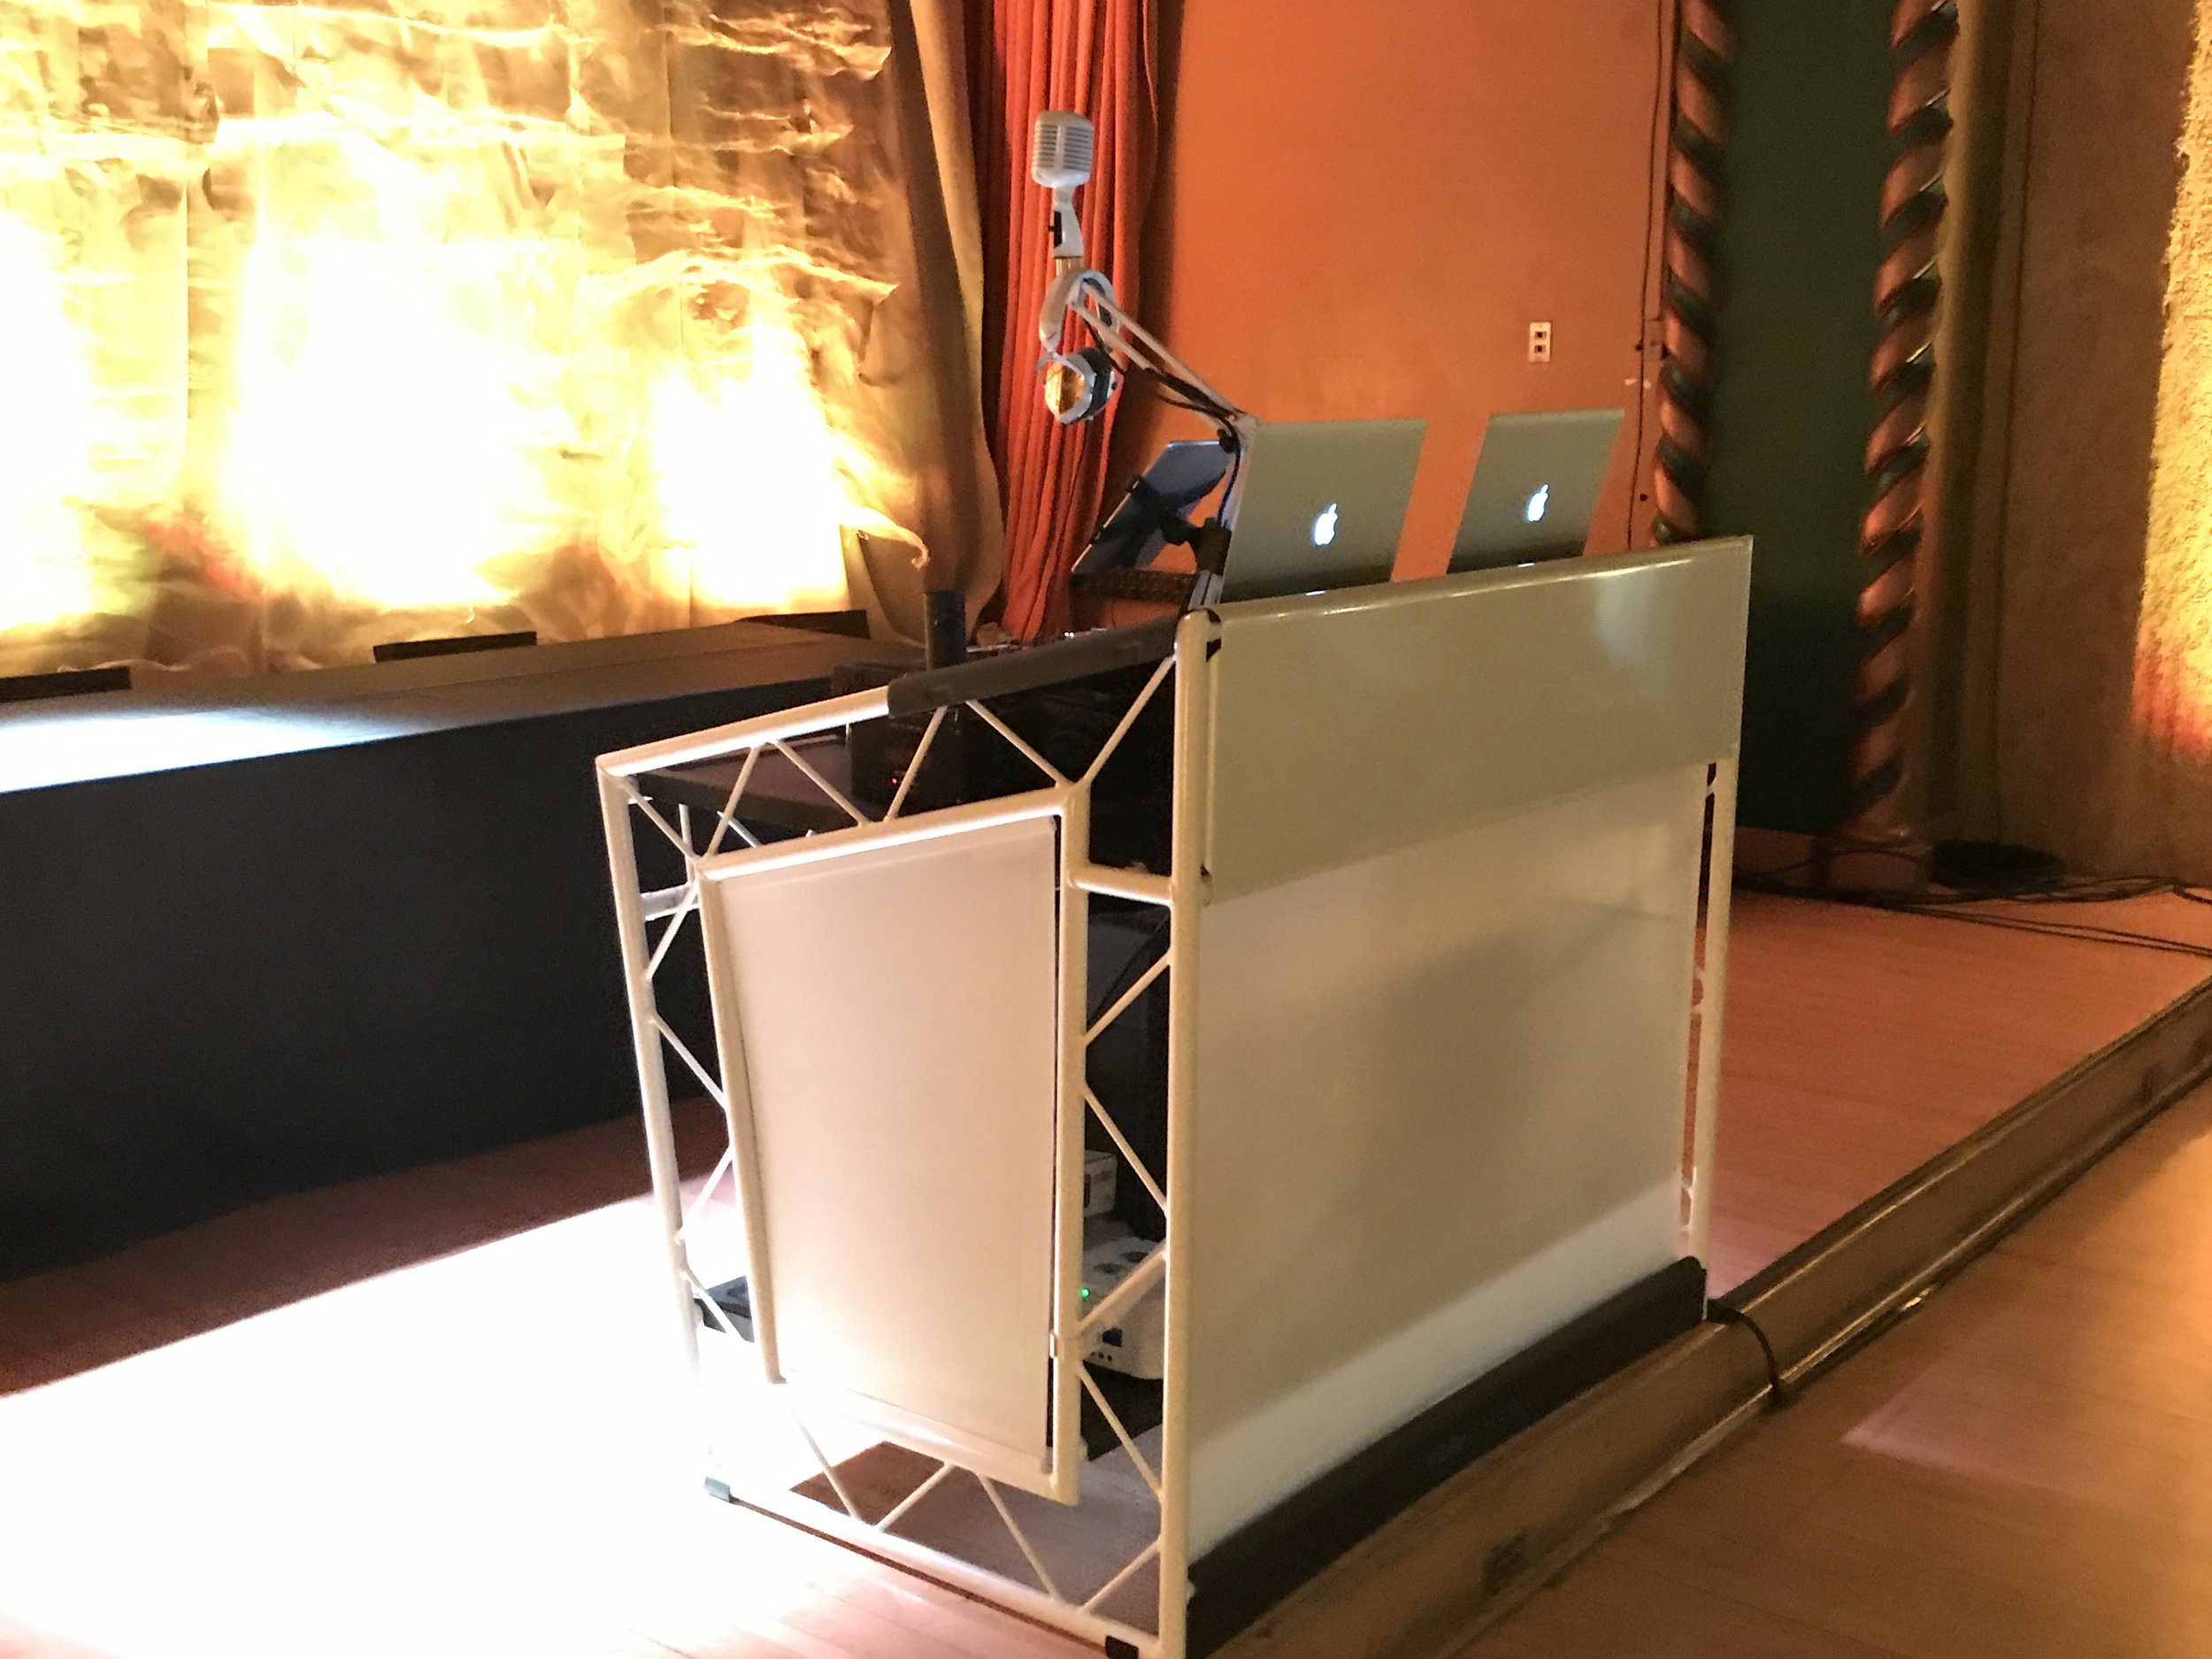 New for 2018? All white DJ booth which can be lit with your colors or include a flat screen TV.